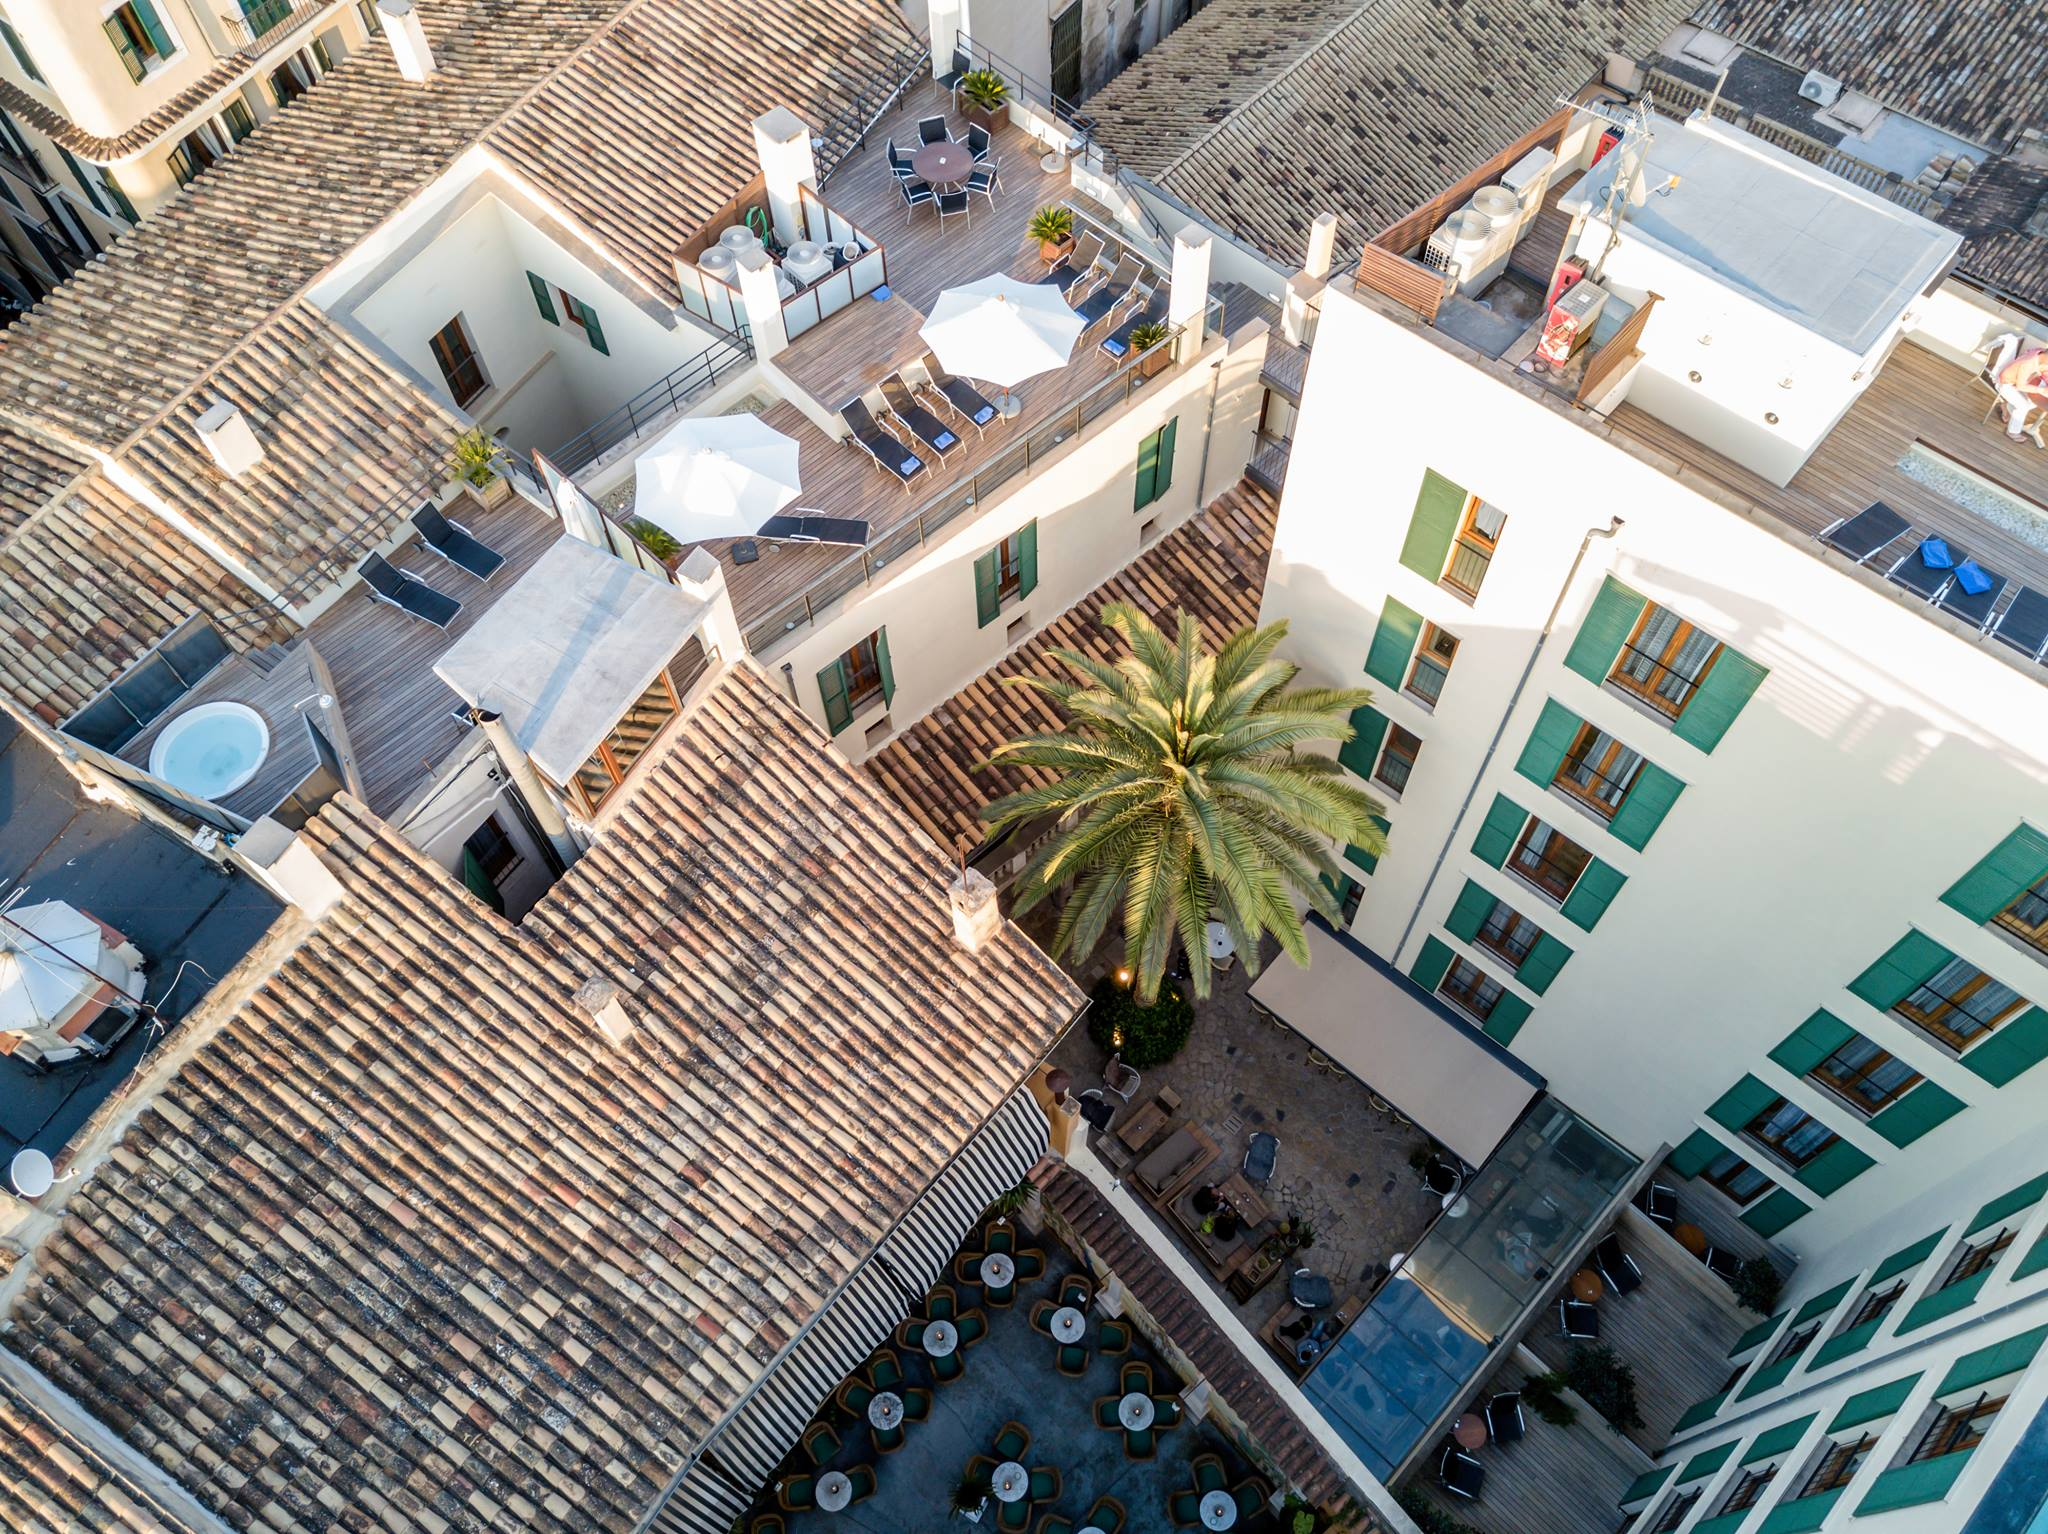 Aerial view of Hotel Tres - Palma - Mallorca